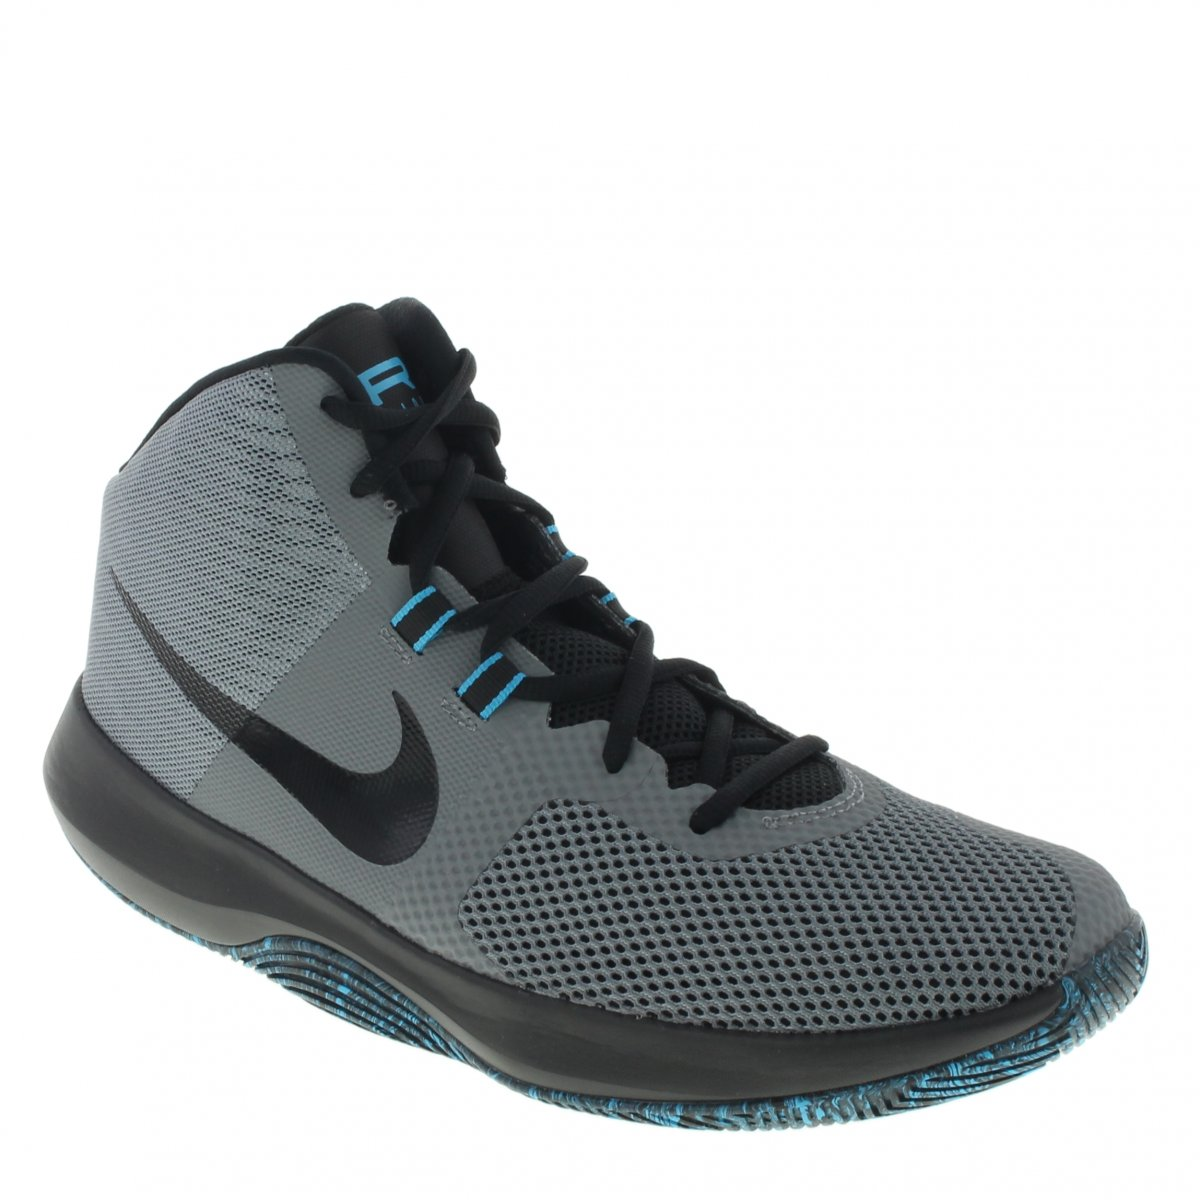 88246ccea Tenis Nike Air Precision 898455 005